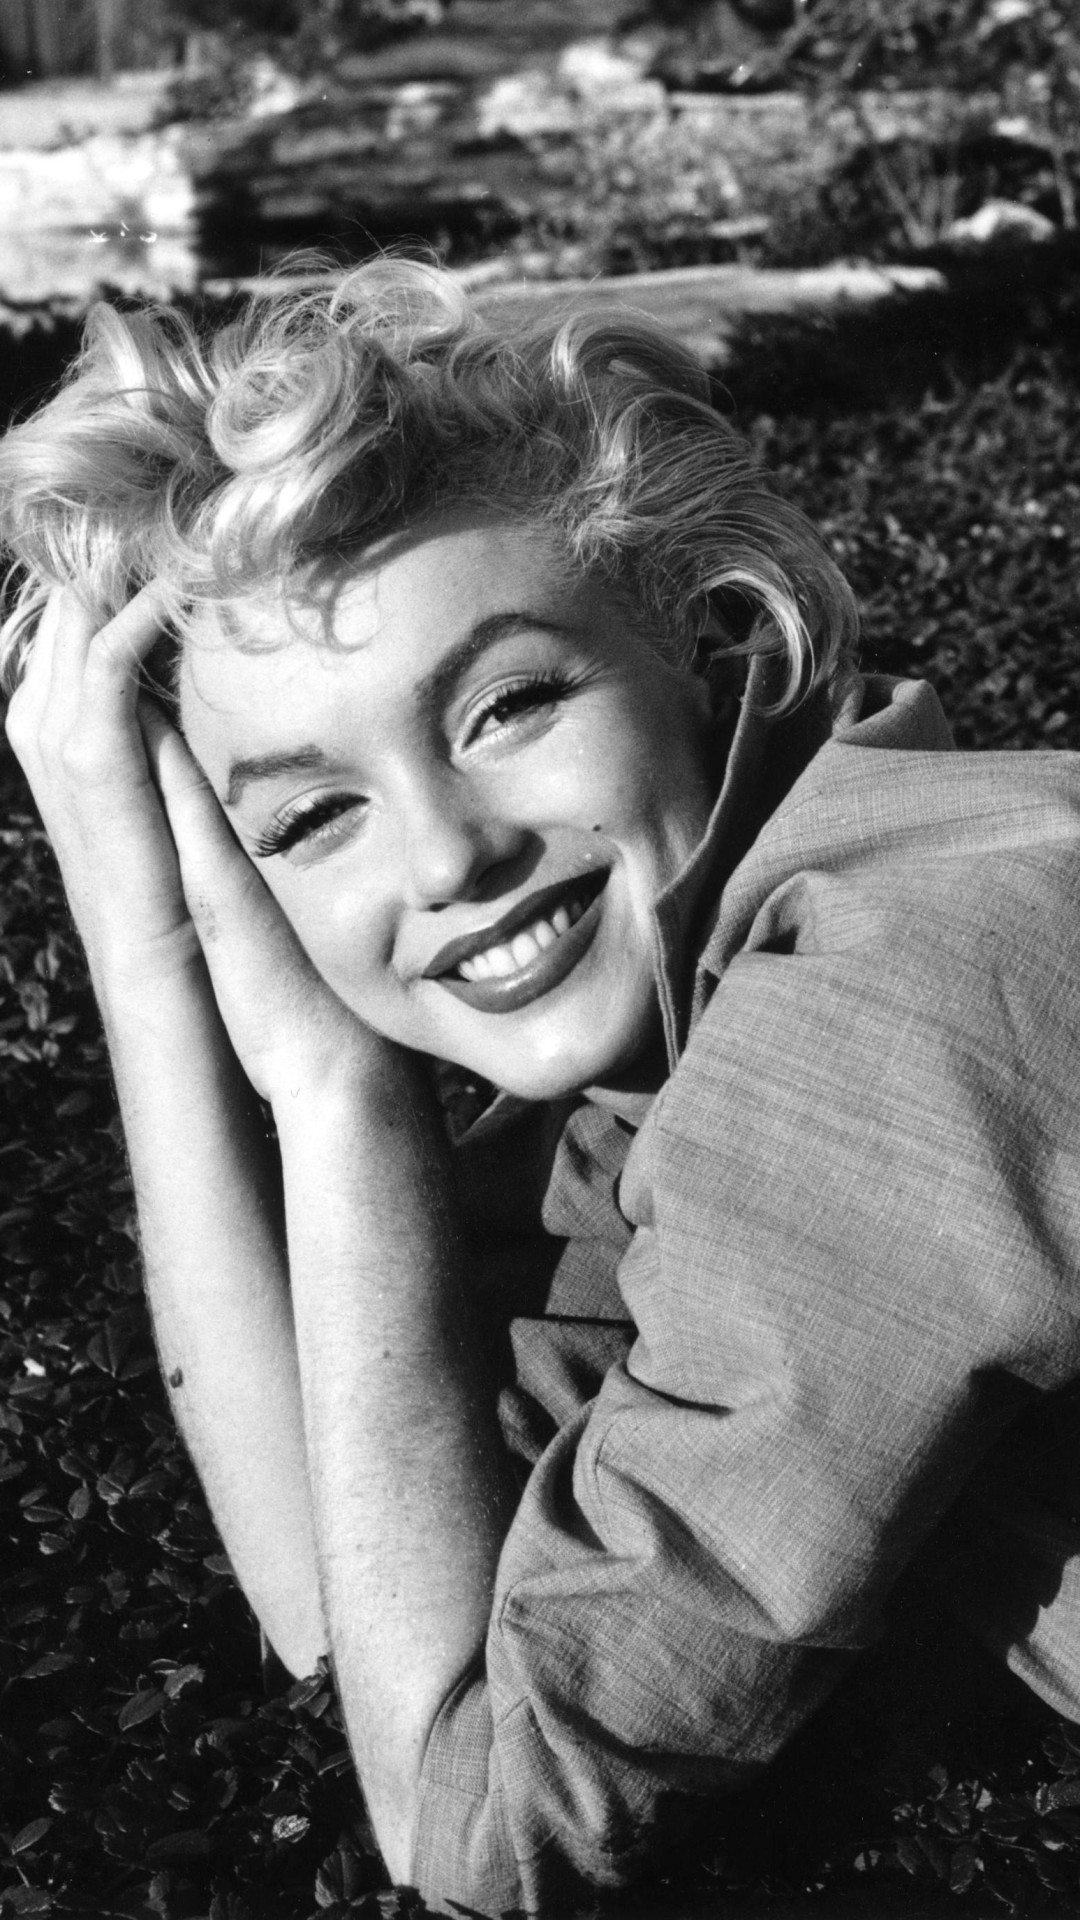 Marilyn monroe wallpapers 72 images 1920x1474 marilyn monroe wallpaper hd voltagebd Image collections